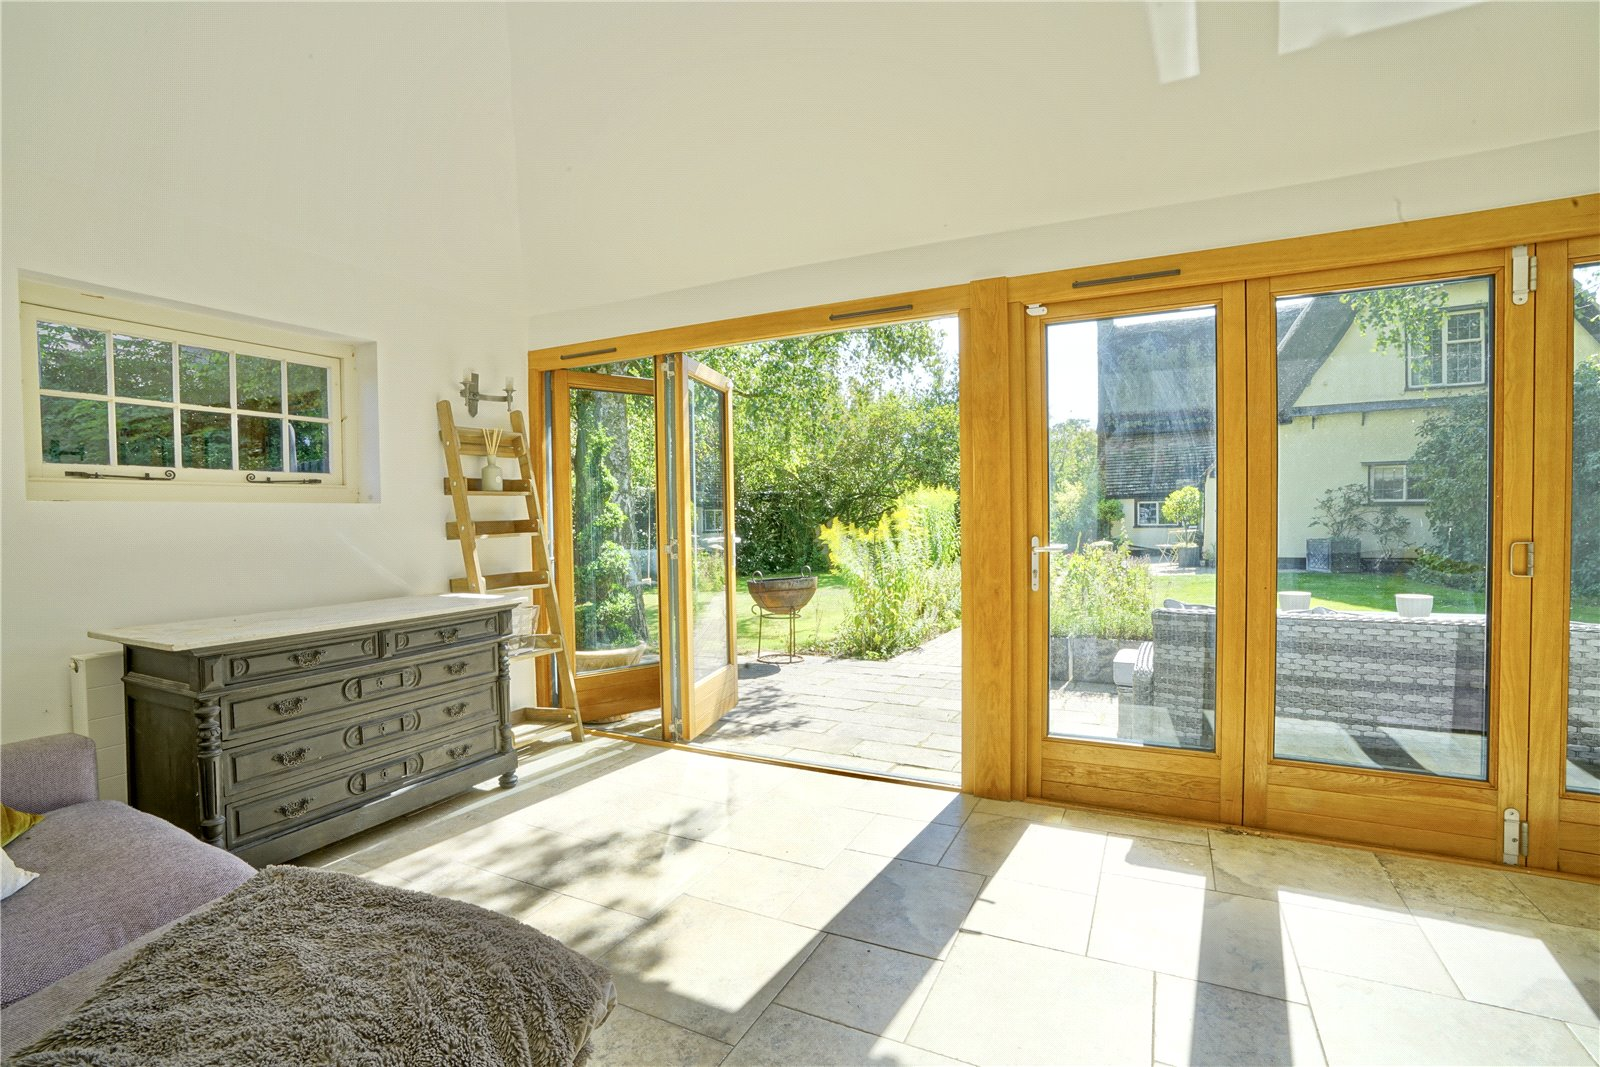 3 bed house for sale in Great Staughton 11